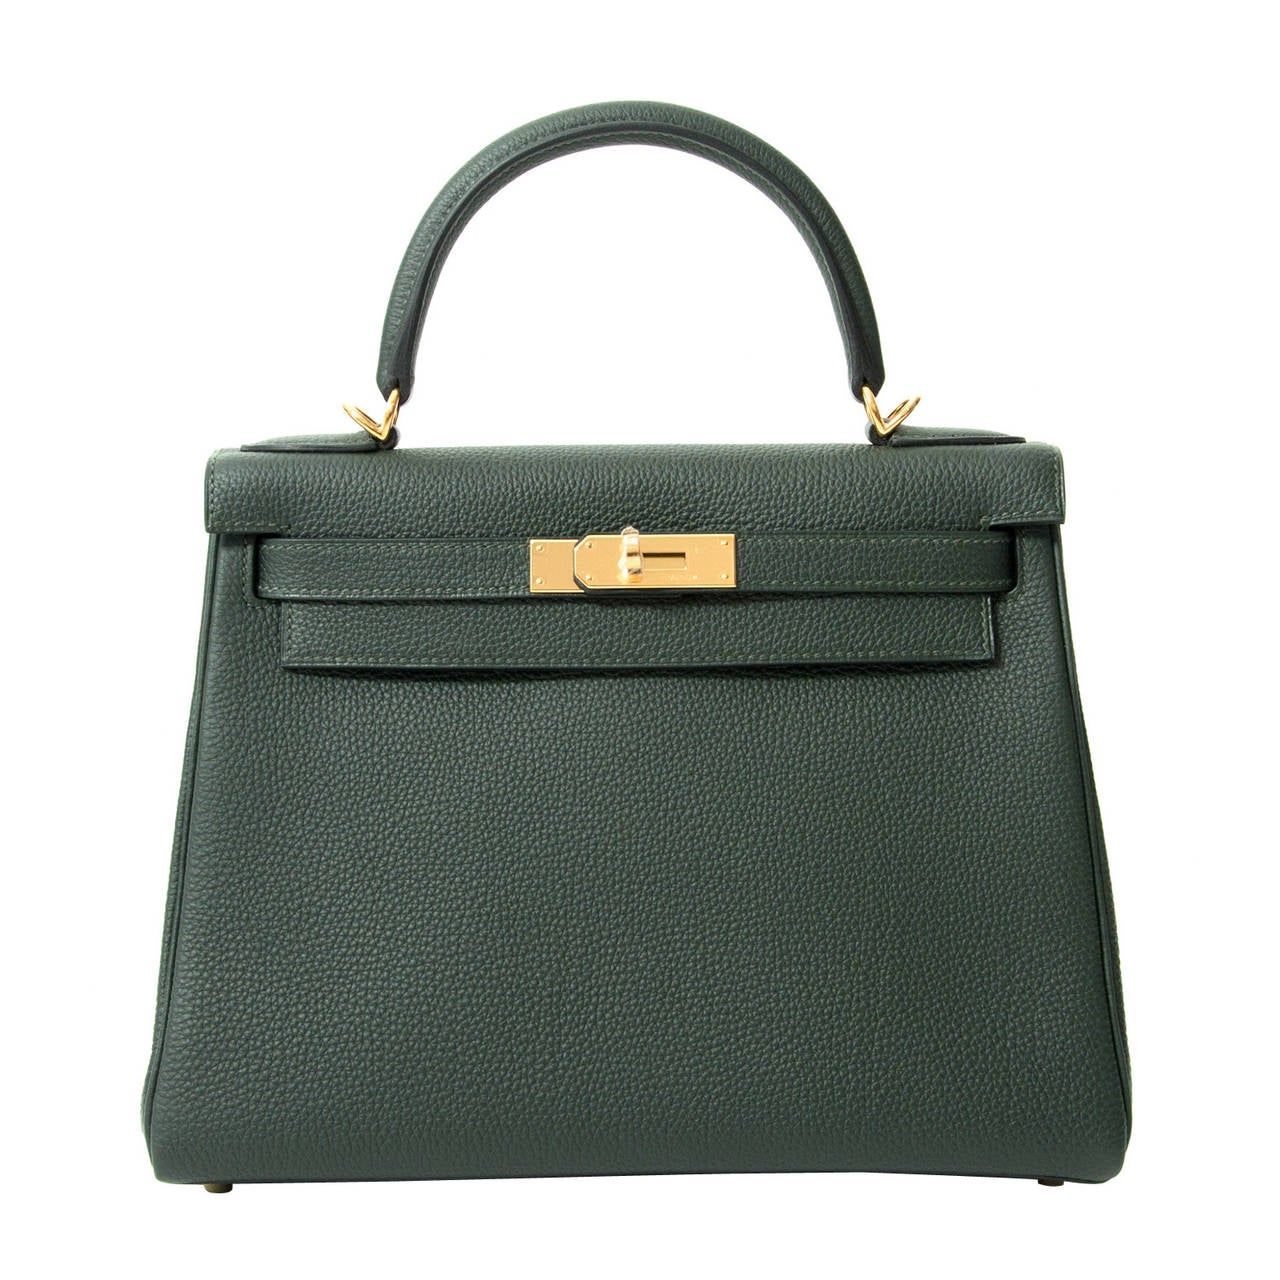 d2522a0faaea BRAND NEW Hermès Kelly Bag 28 Togo Vert Fonce GHW With Shoulder Strap For  Sale